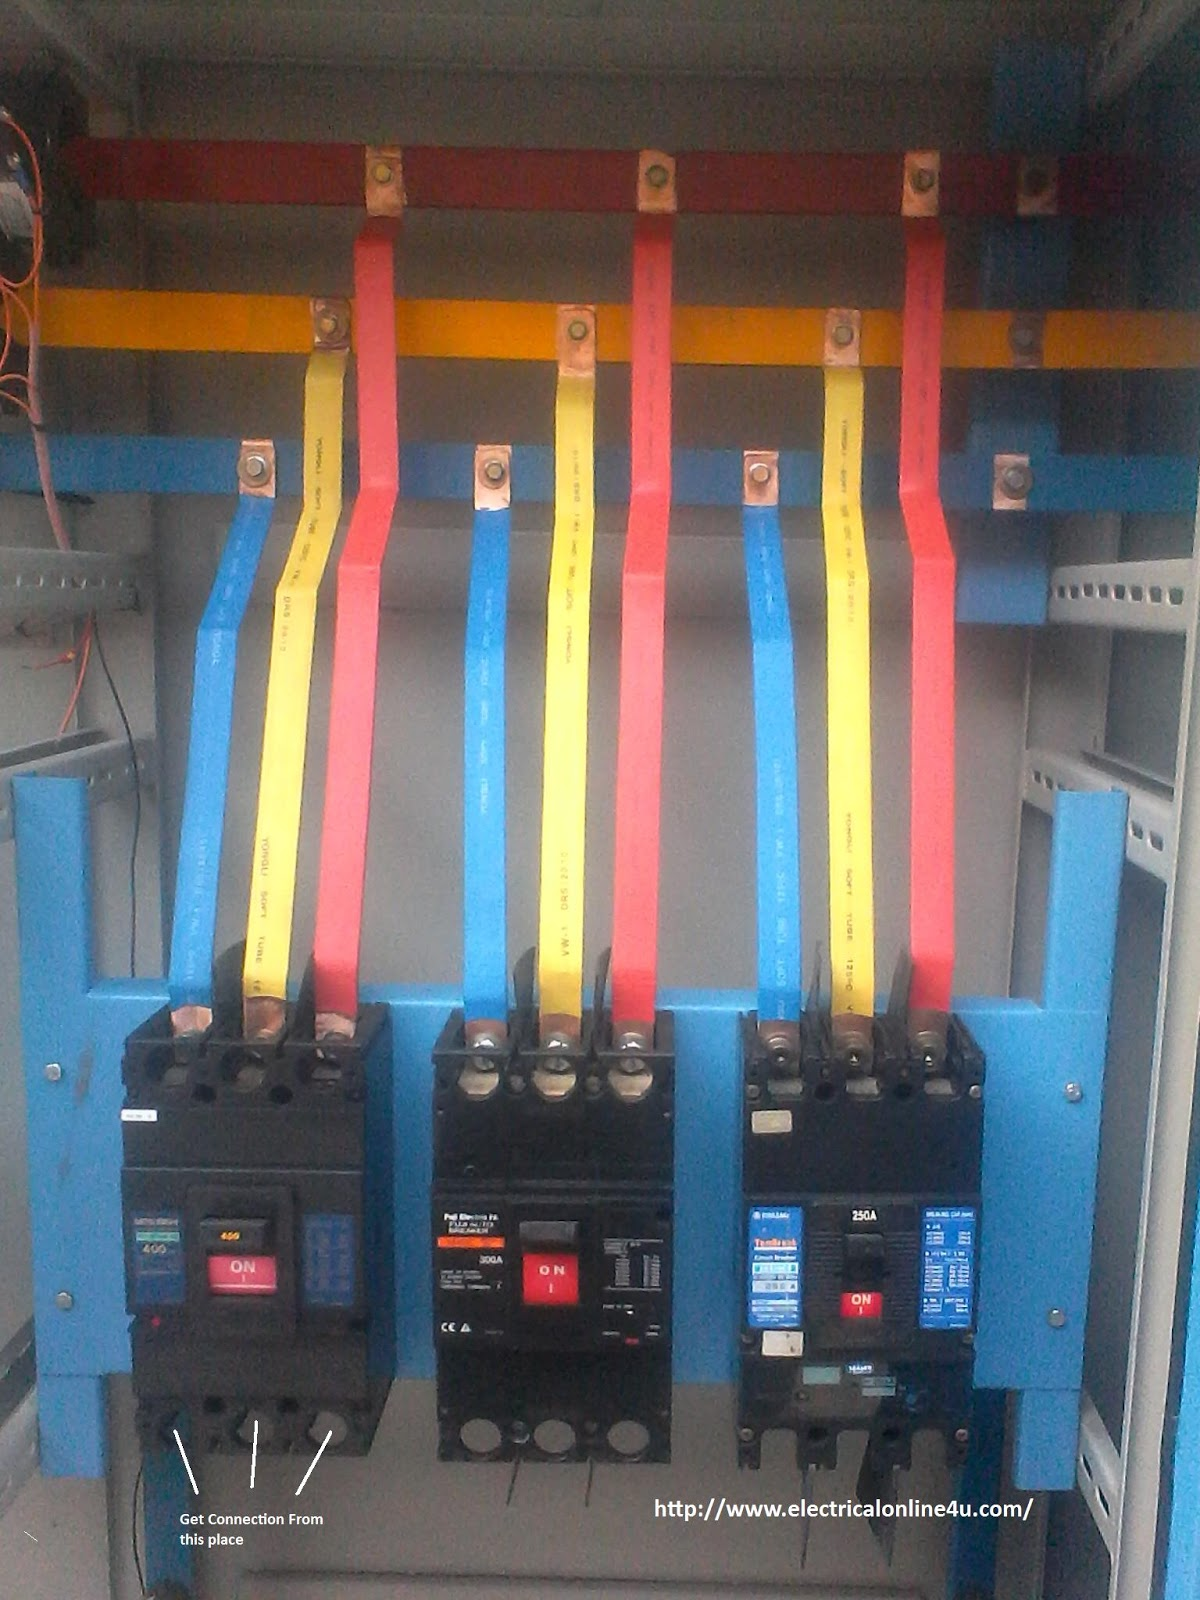 Circuit%2BBreaker%2BInstallation%2BFor%2BThree%2BPhase%2BSupply circuit breaker installation for three phase supply 3 phase schneider mccb motorized wiring diagram at webbmarketing.co